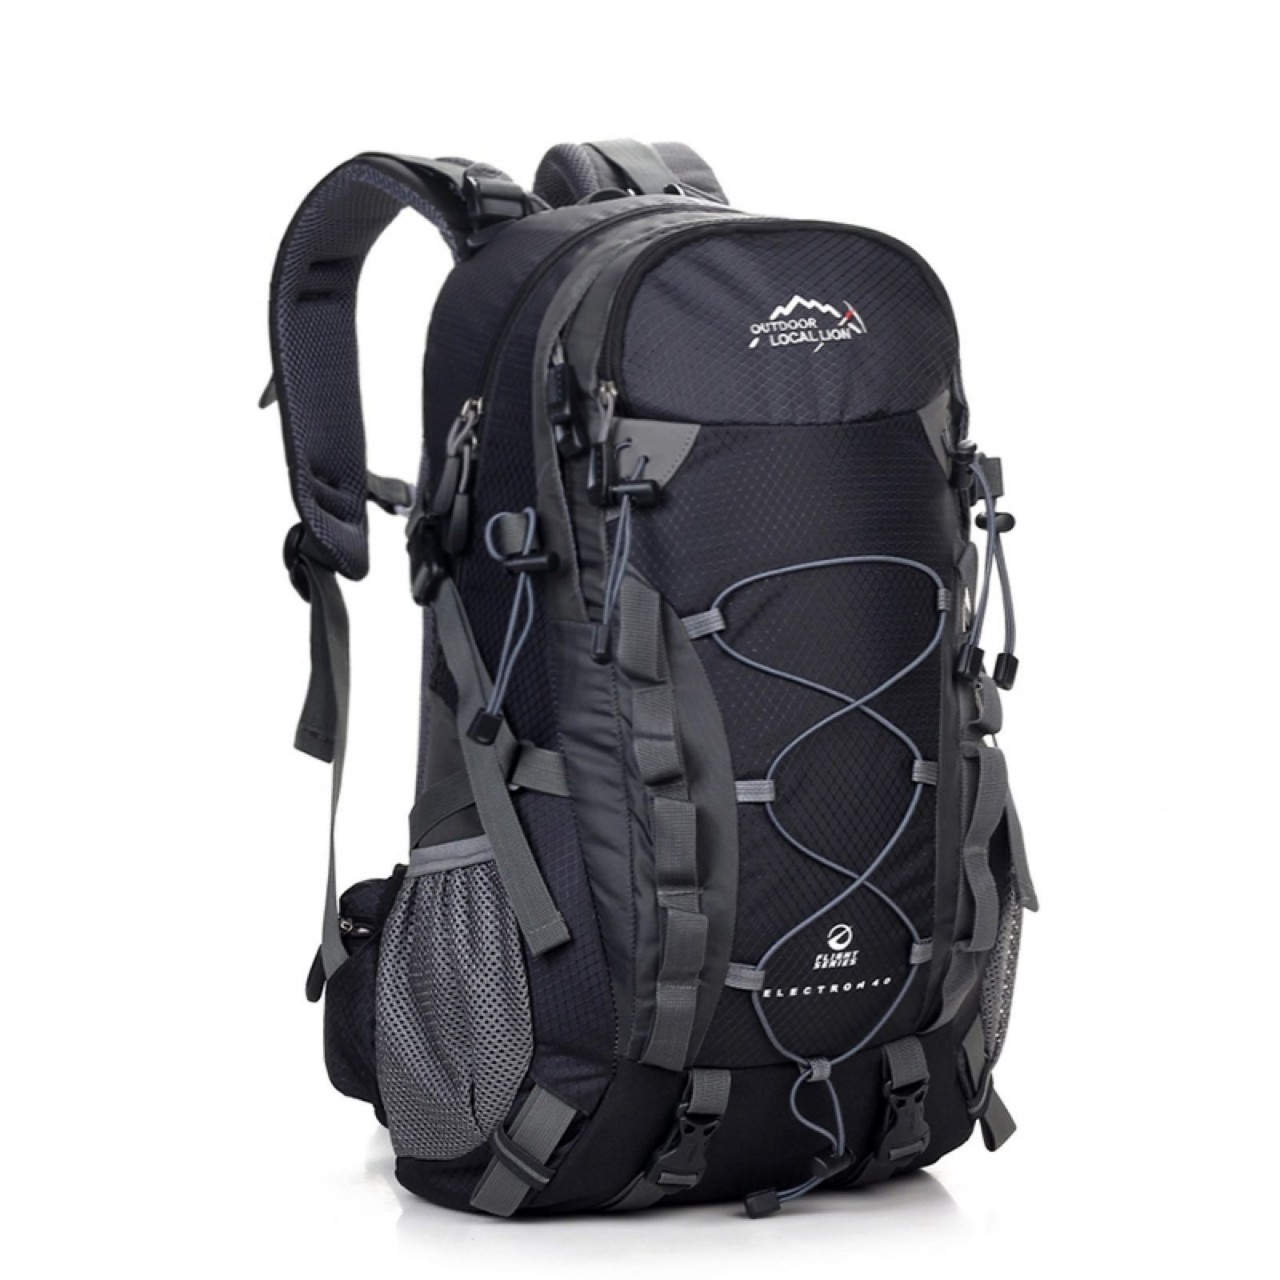 Local Lion New Style Outdoor Mountaineering Bag Fashion Europe And America Men's Backpack Hiking Backpack